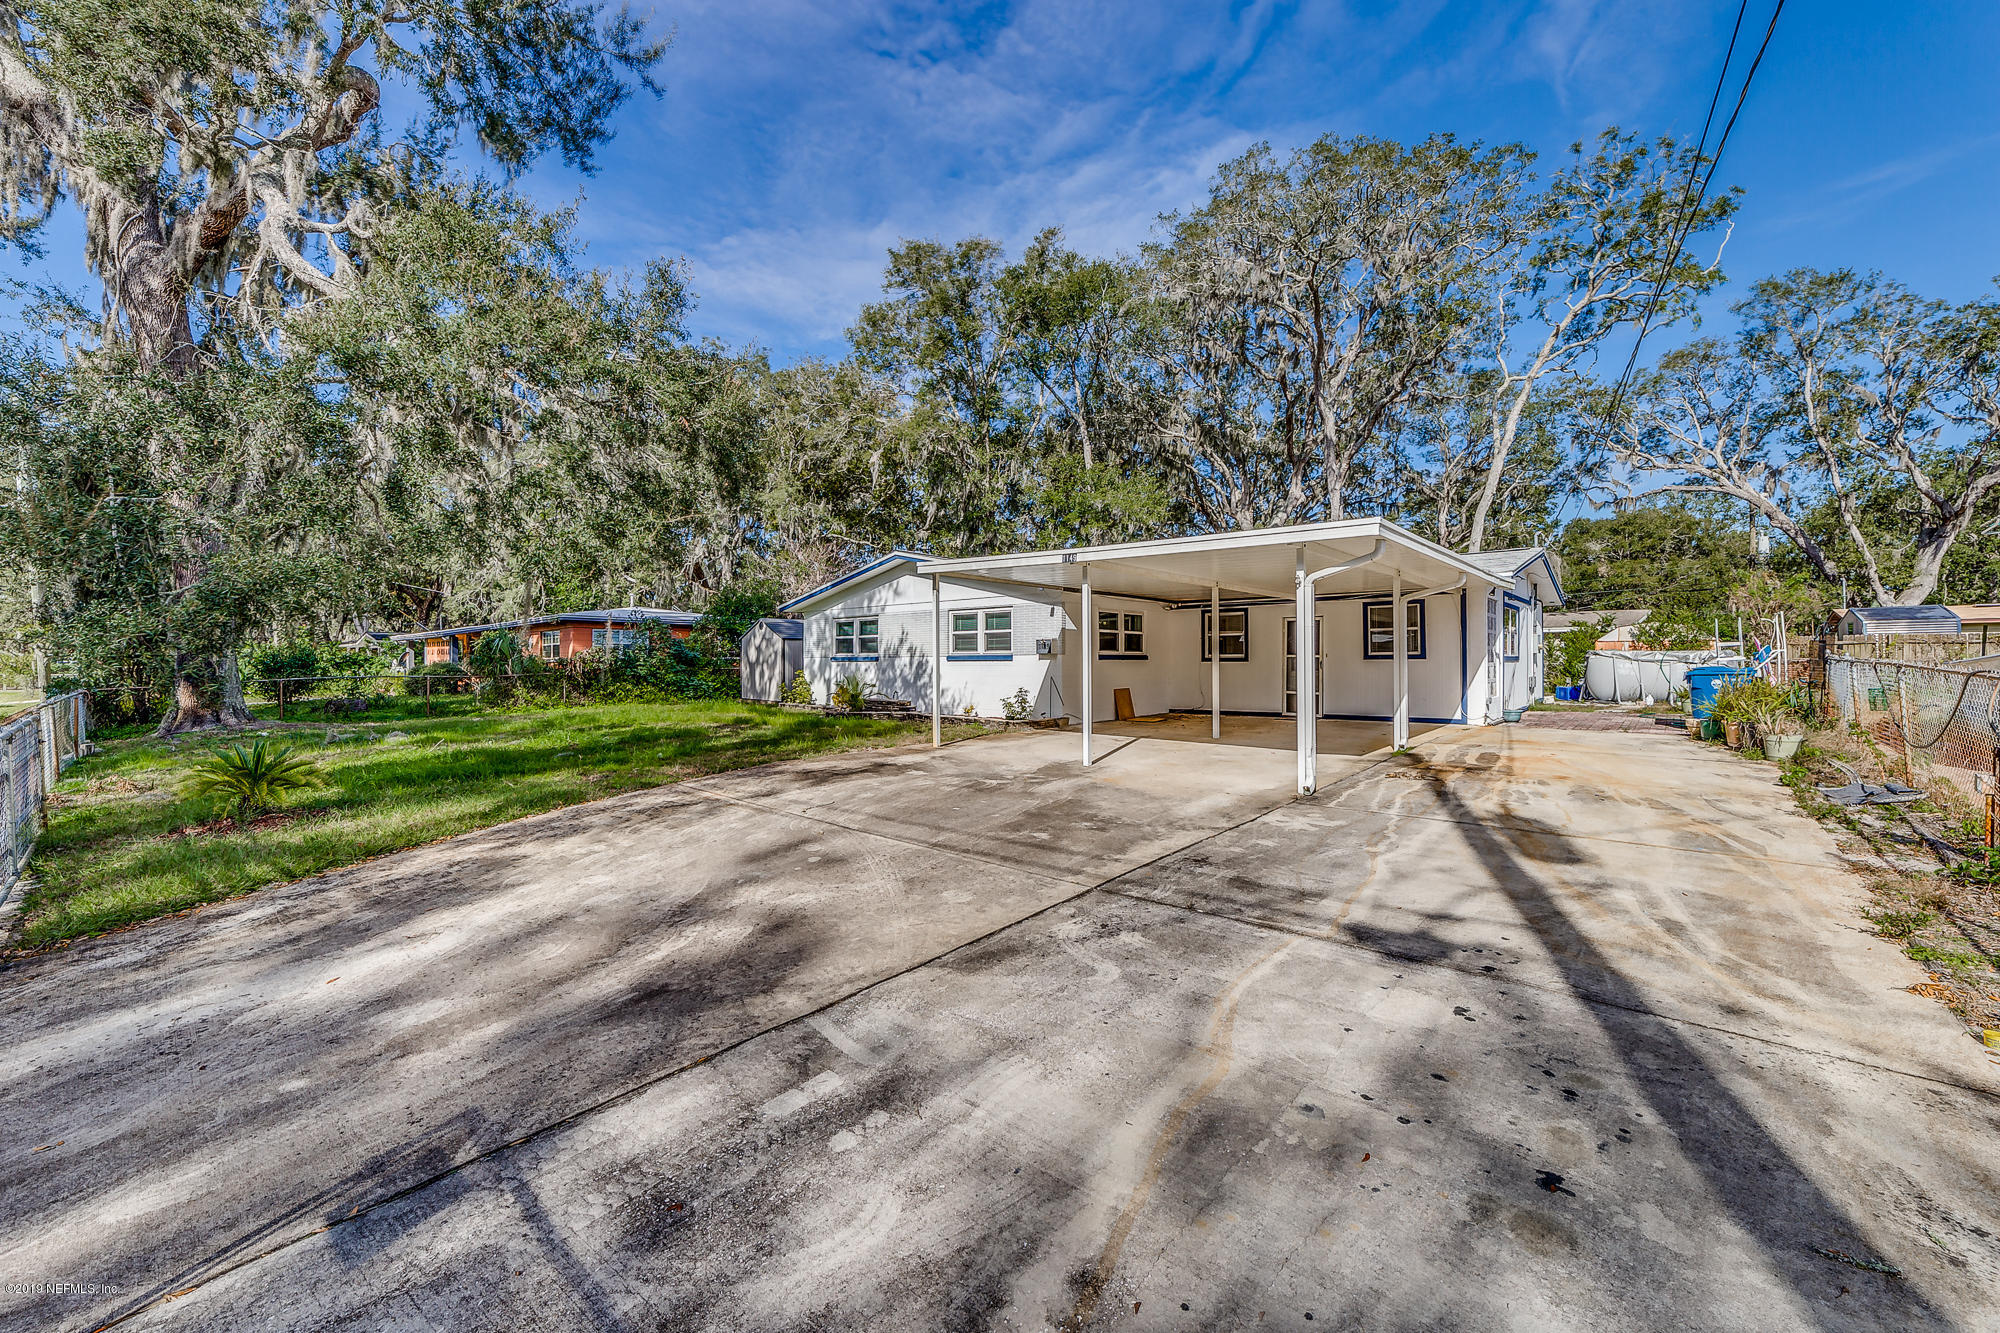 1149 PANUCO, JACKSONVILLE, FLORIDA 32233, 3 Bedrooms Bedrooms, ,2 BathroomsBathrooms,Residential - single family,For sale,PANUCO,974170